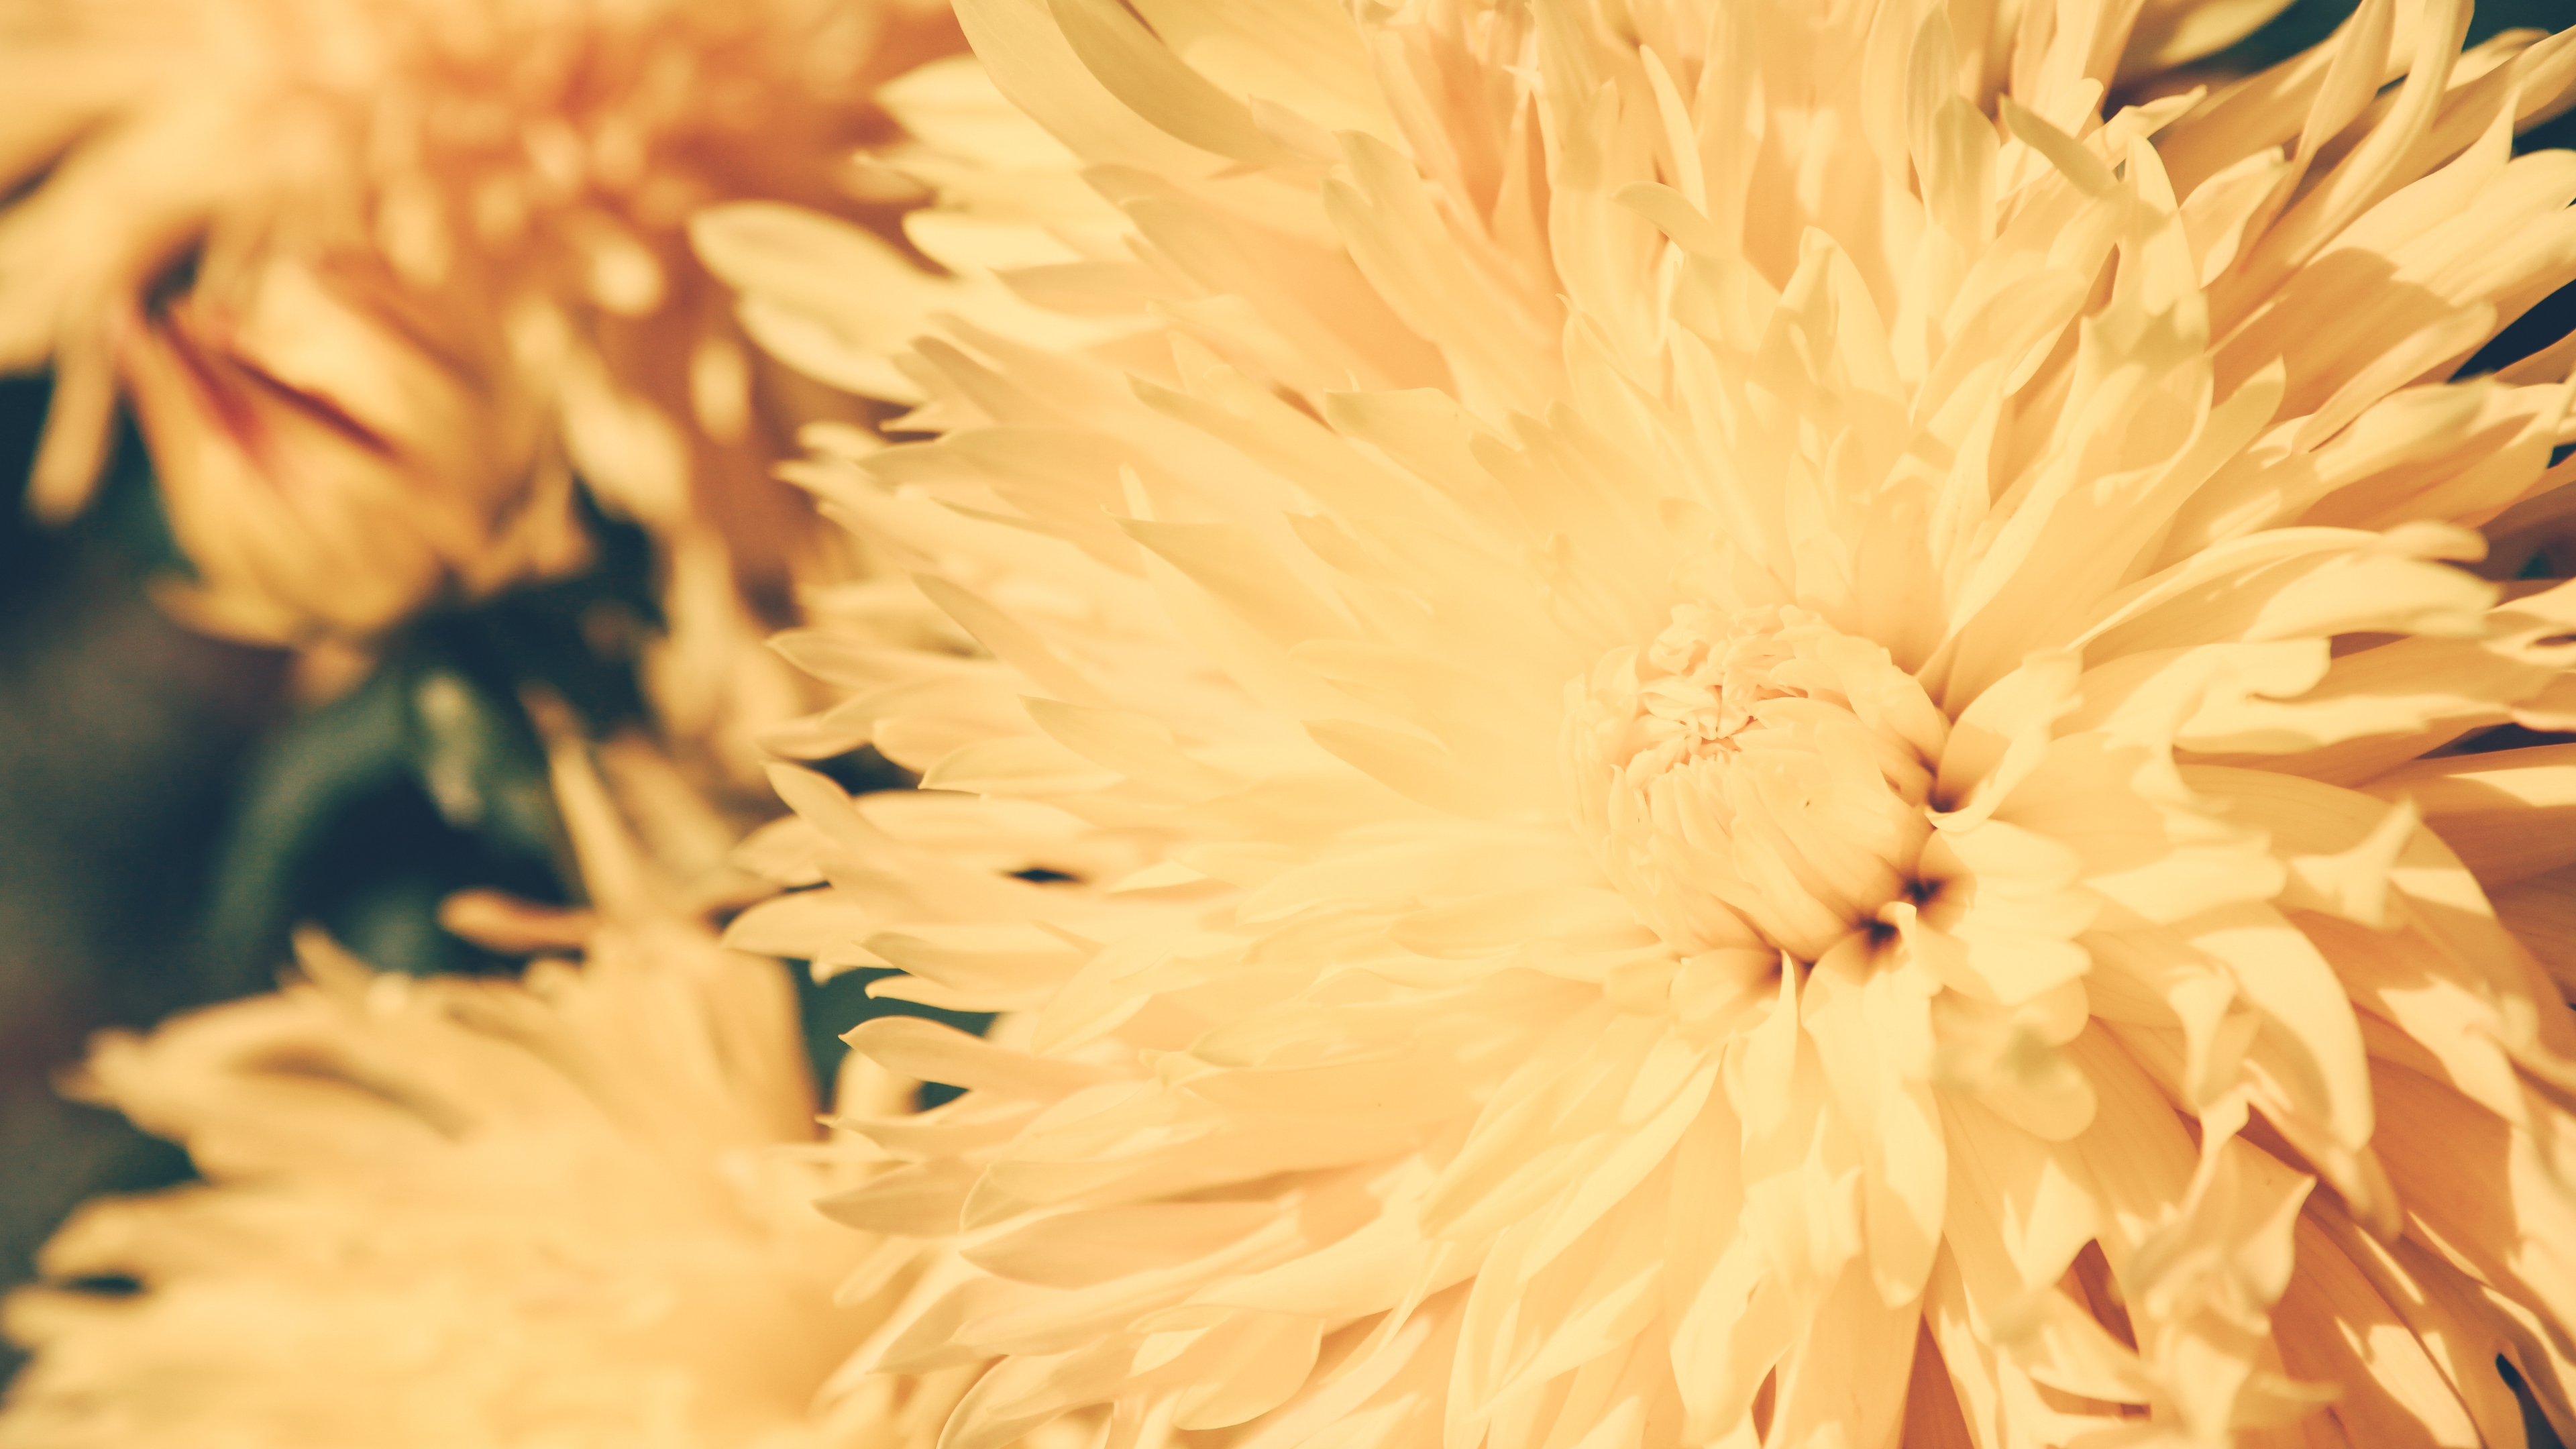 chrysanthemum petals flower bright 4k 1540064545 - chrysanthemum, petals, flower, bright 4k - Petals, flower, Chrysanthemum